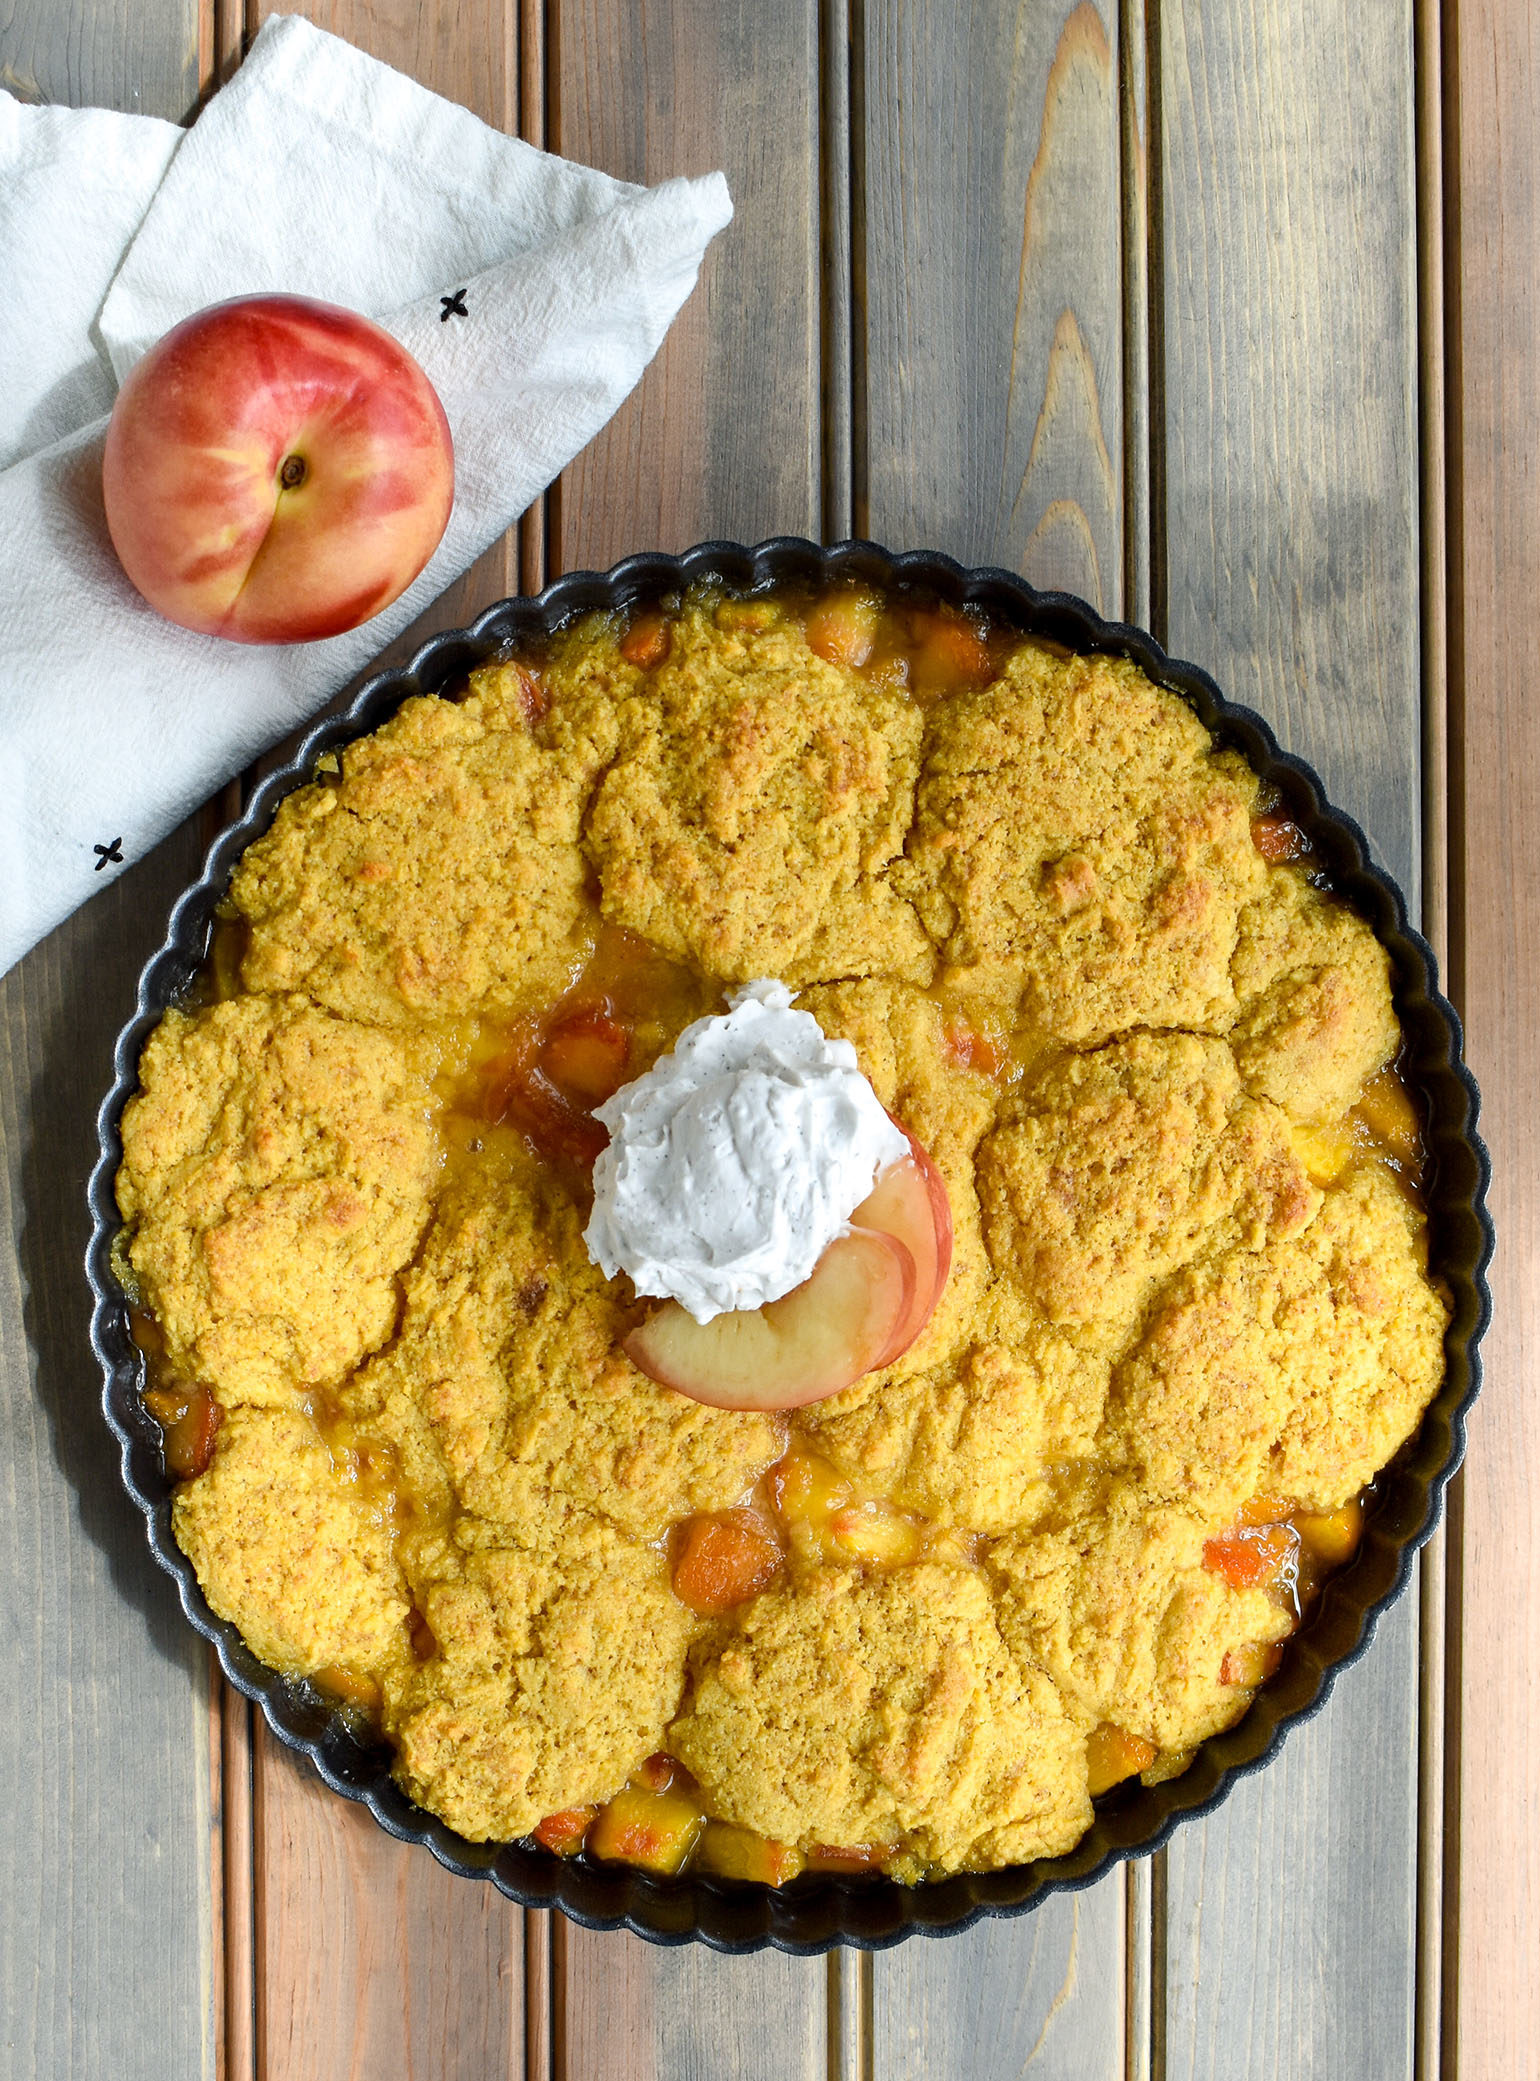 Peach Cobbler with Coconut Whipped Cream